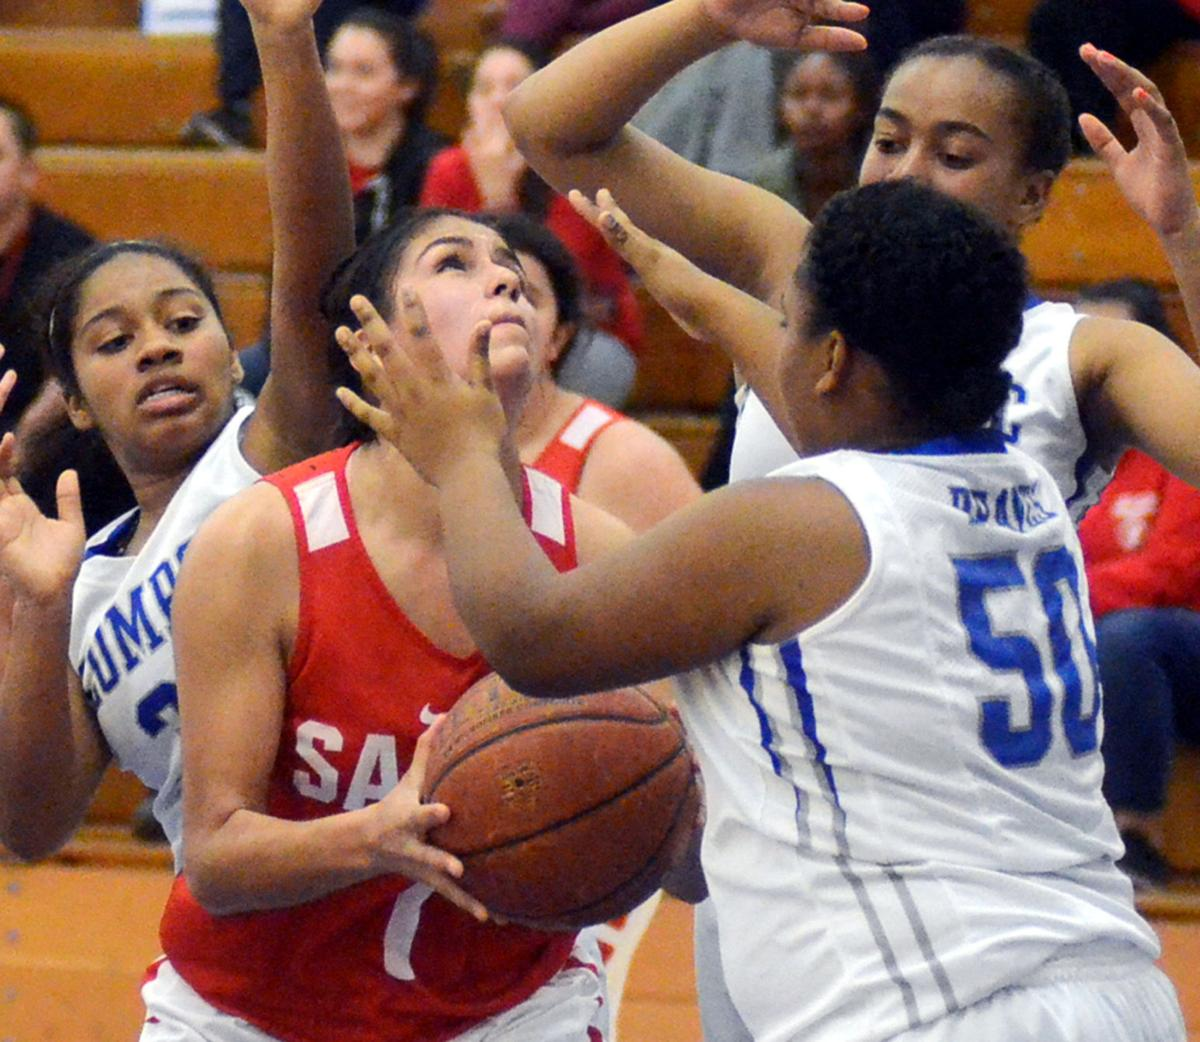 Lompoc-SMH_Girls Basketball 01.jpg